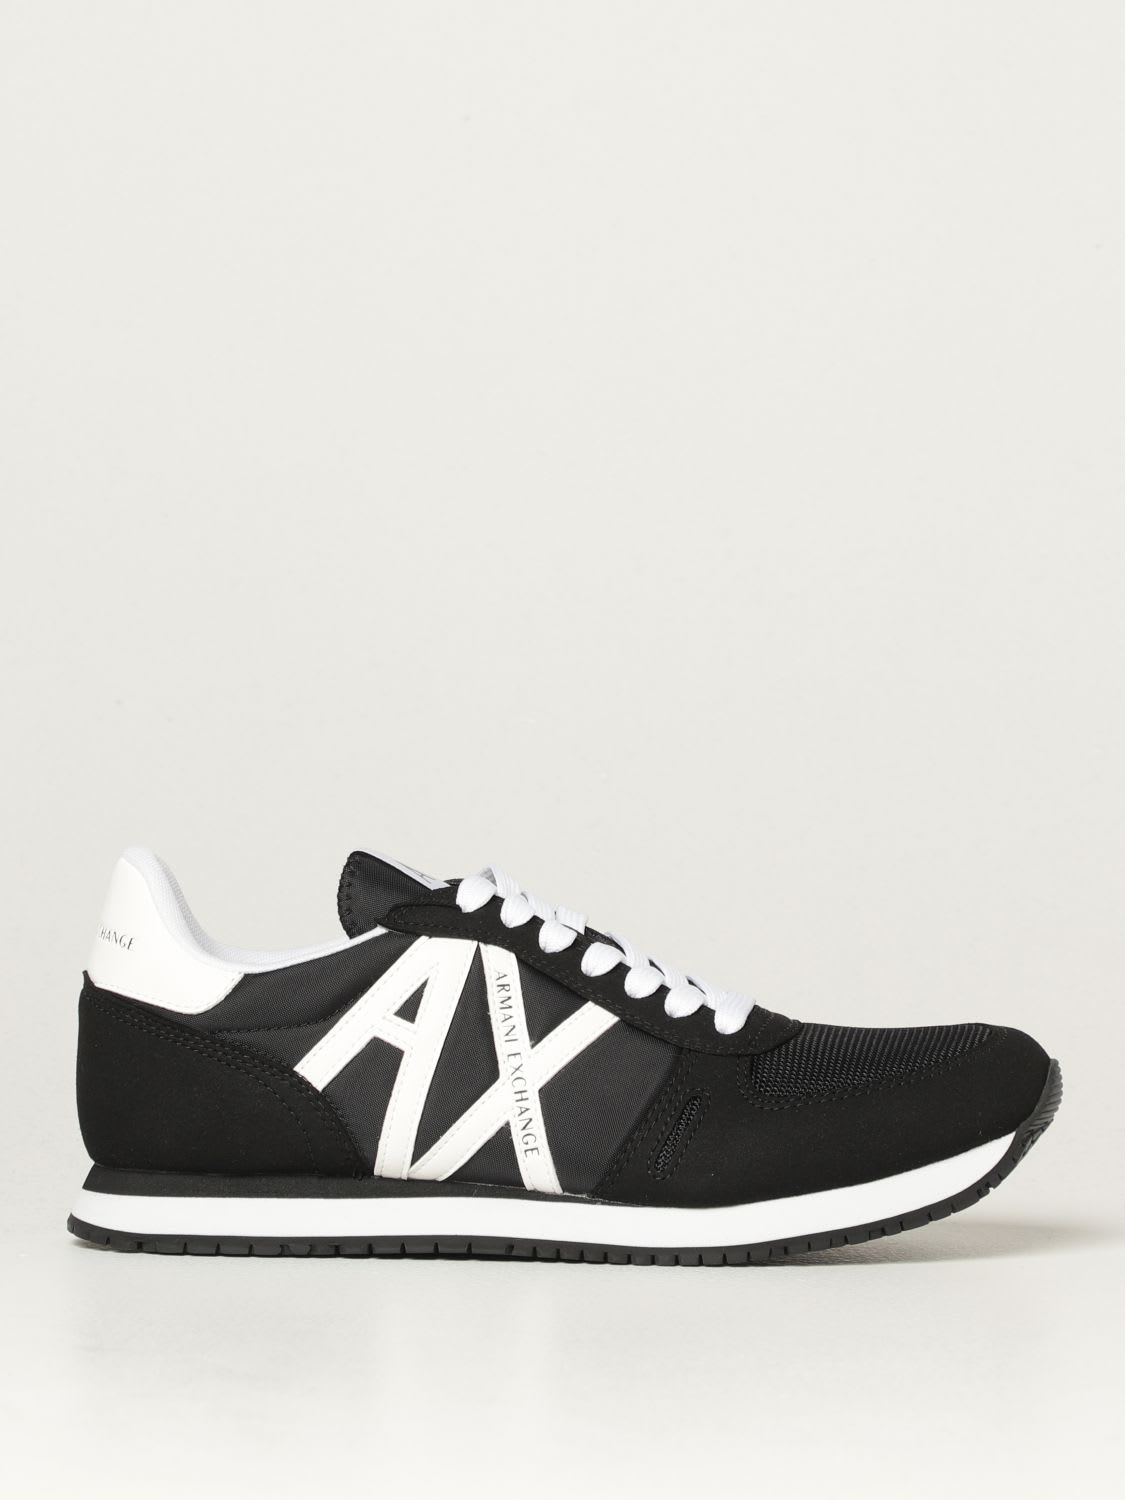 Armani Exchange Sneakers Armani Exchange Sneakers In Fabric And Synthetic Suede